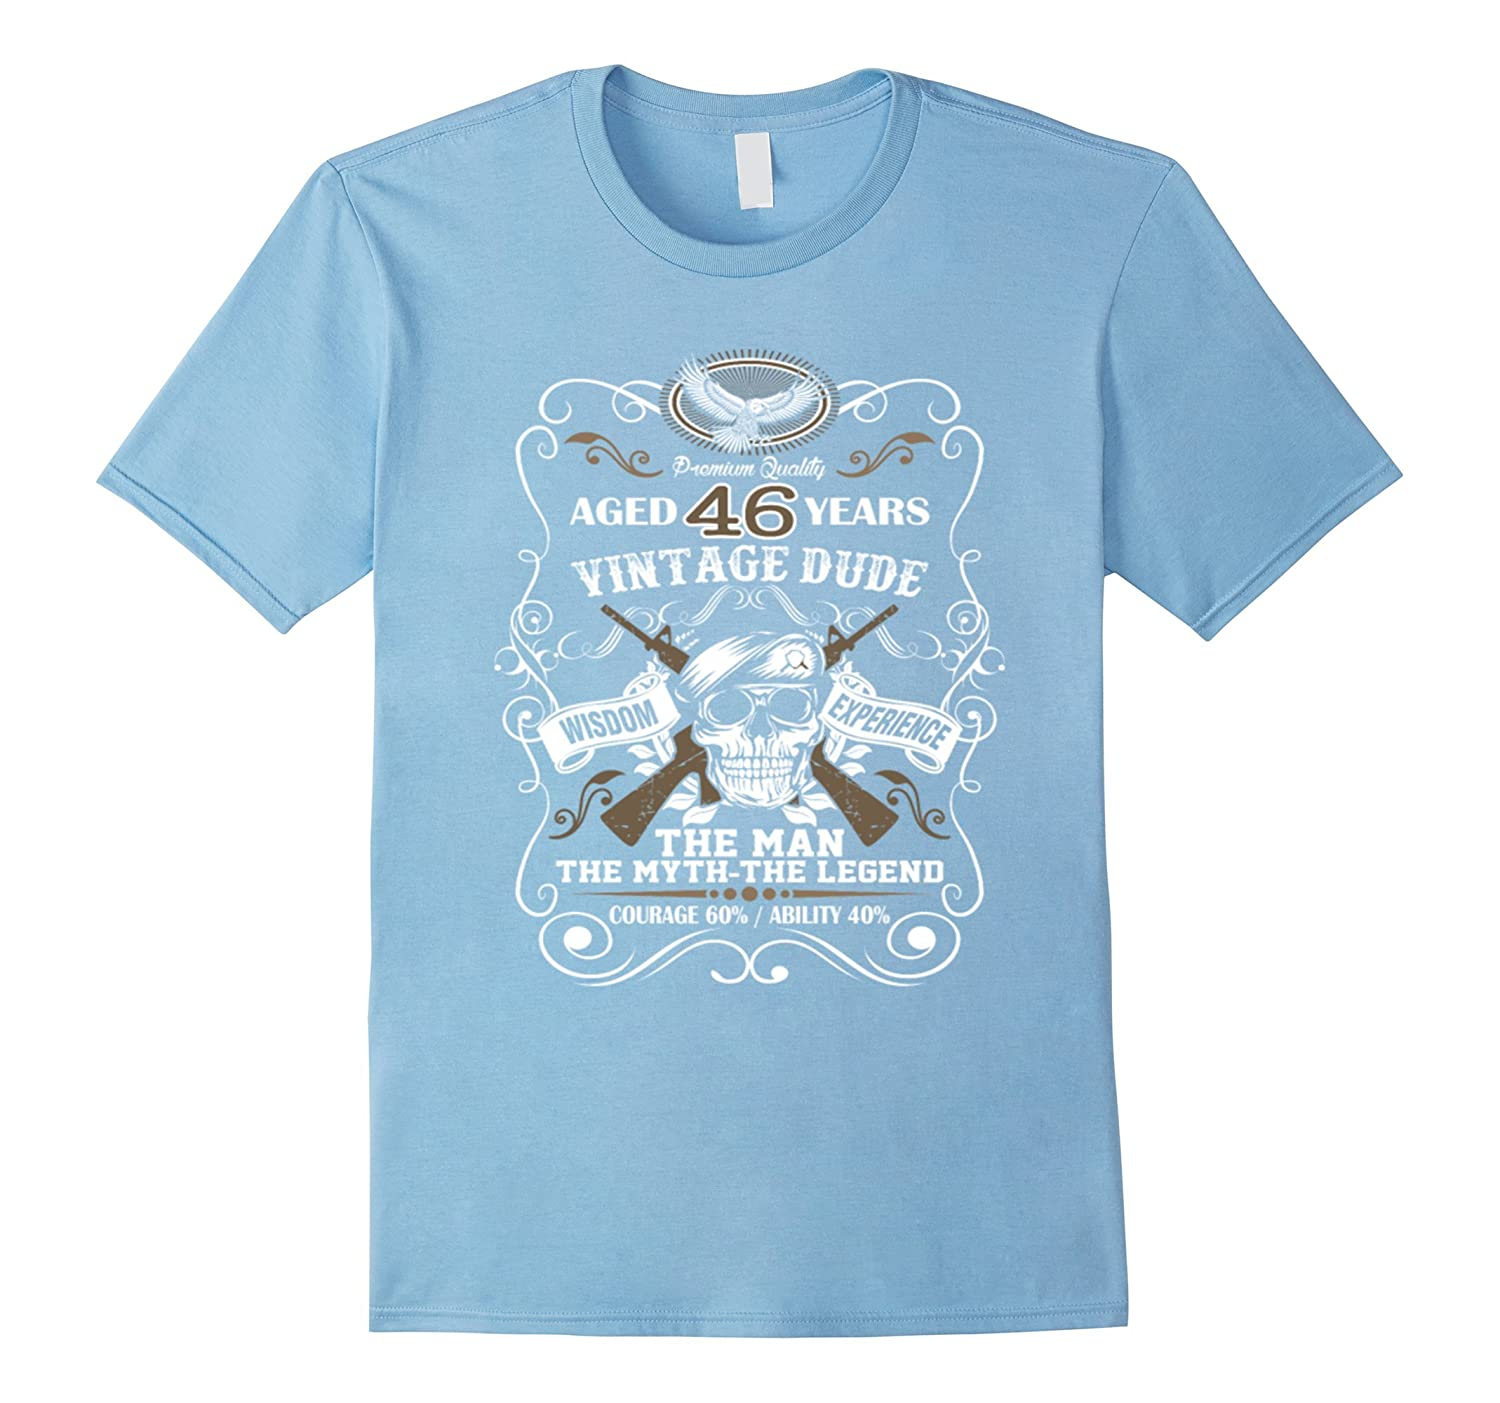 Aged 46 Years Vintage Dude T-Shirt